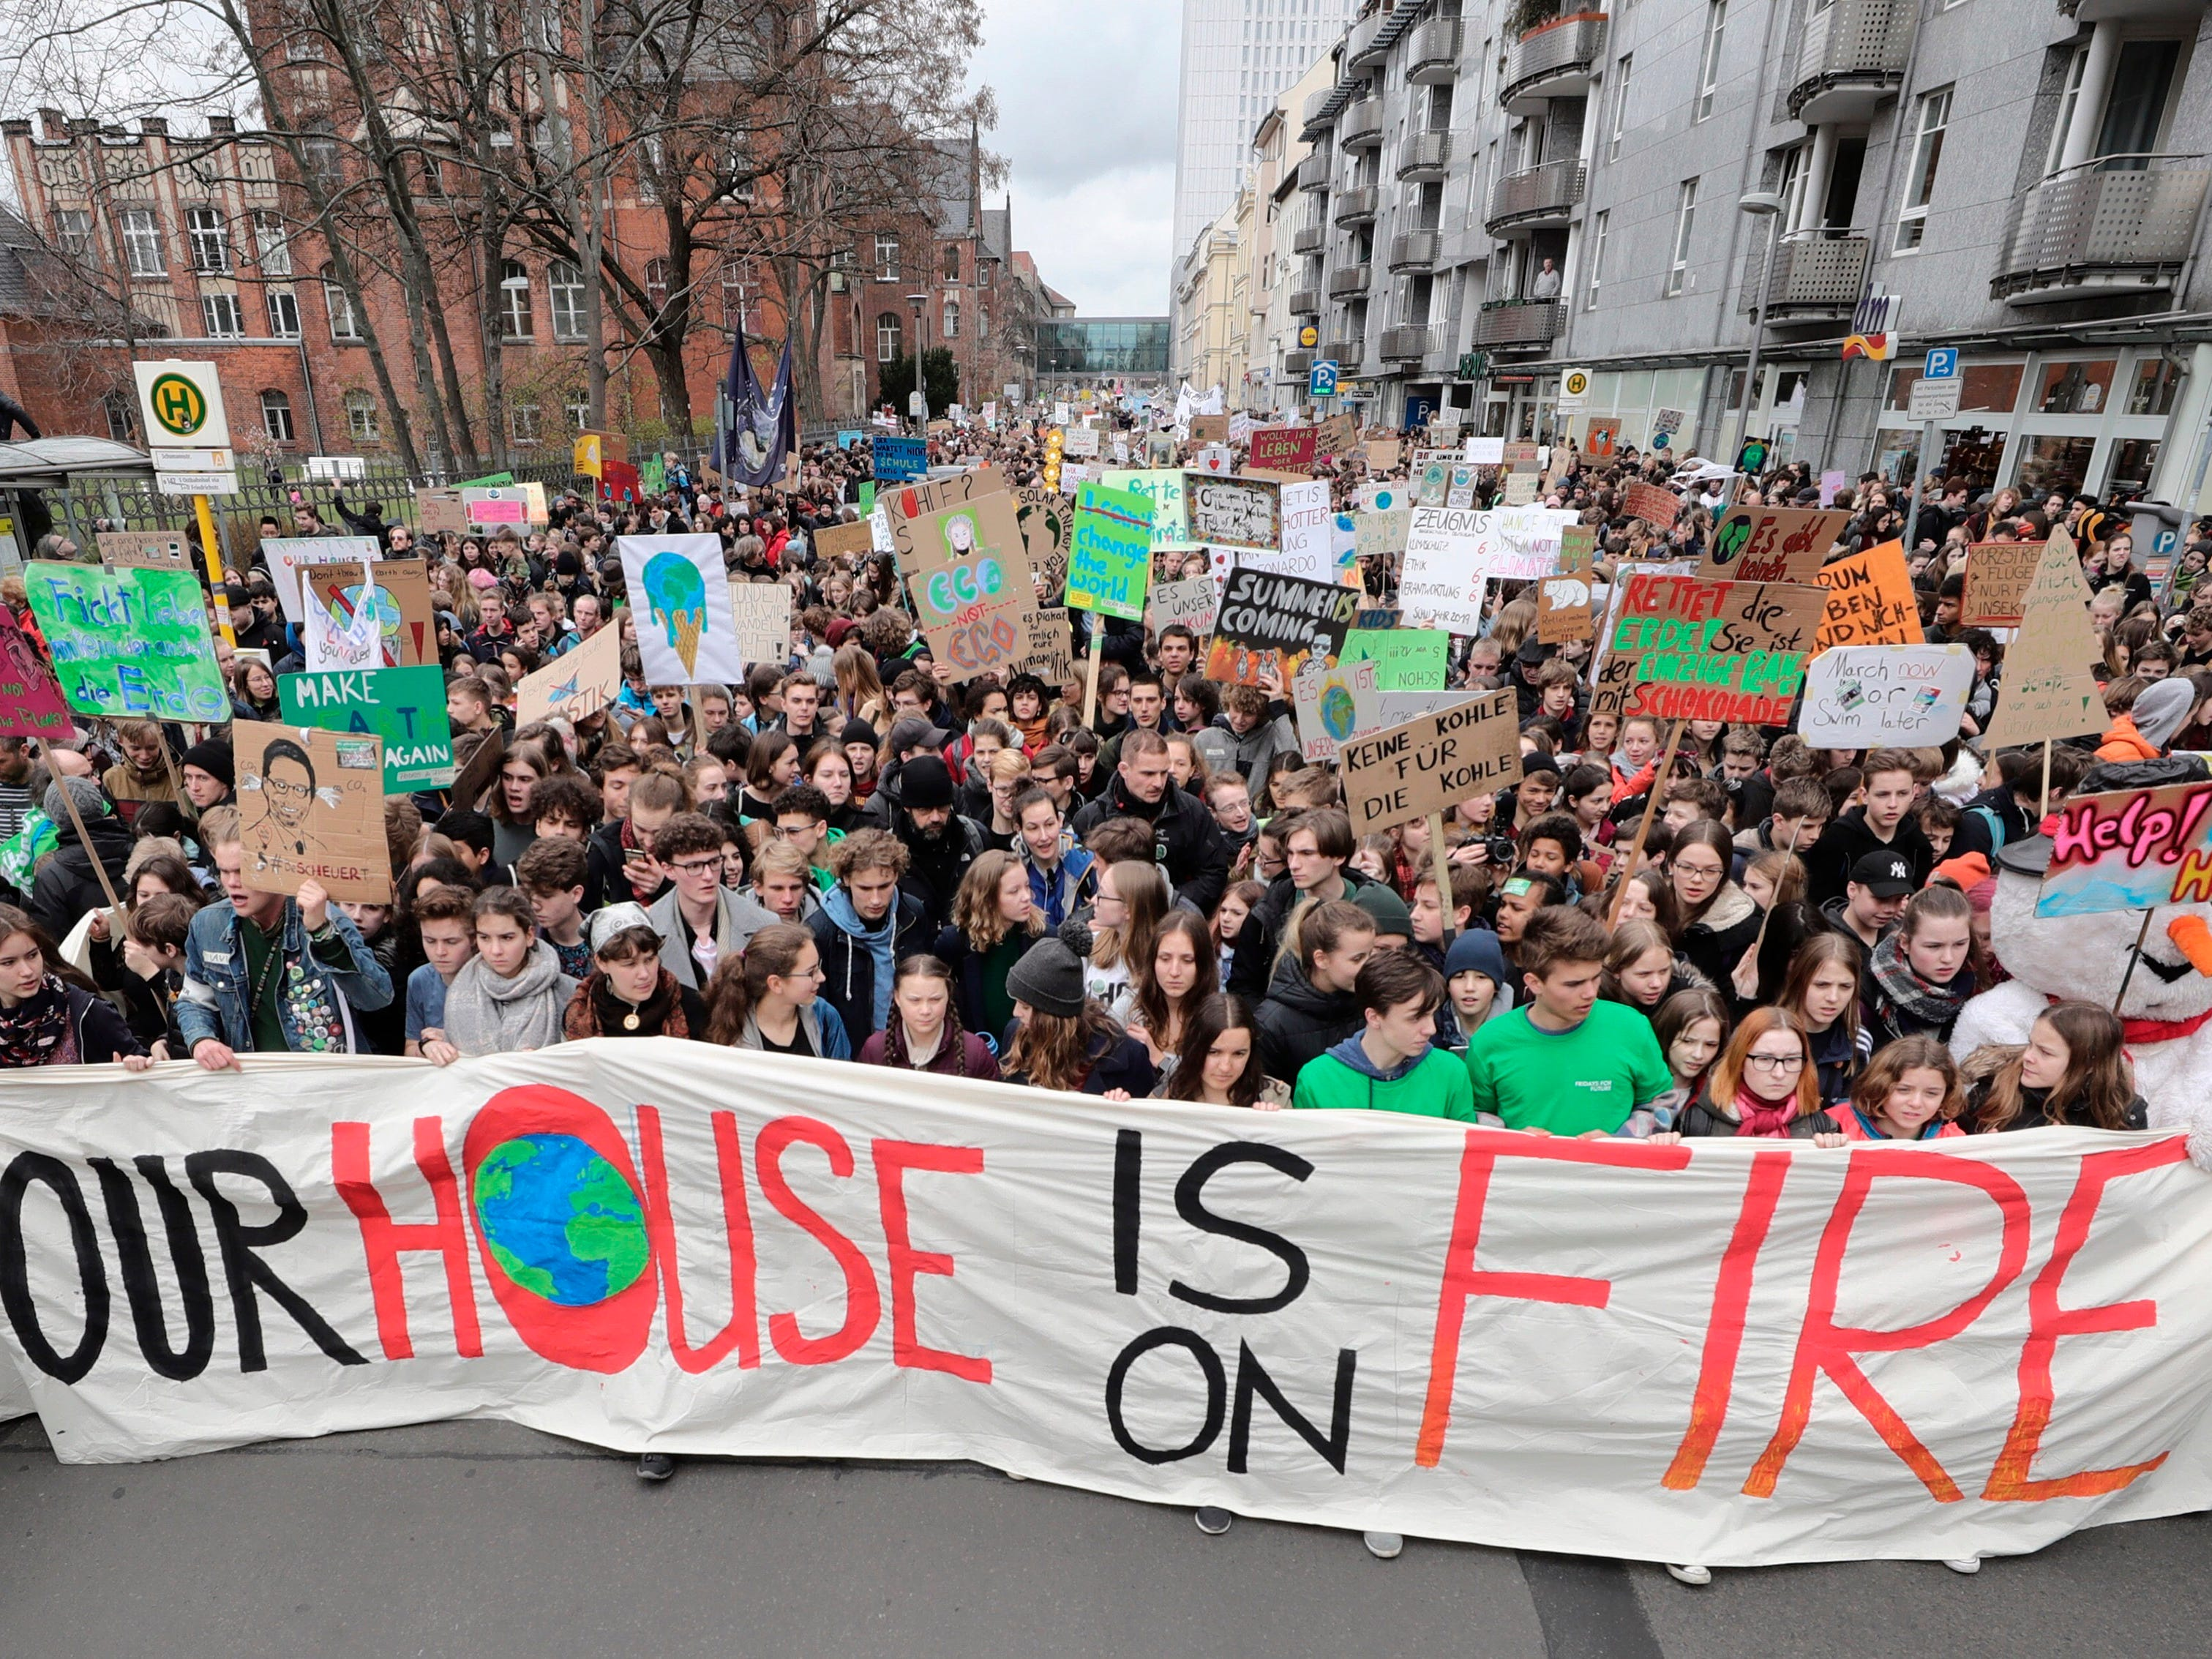 Swedish climate activist Greta Thunberg, center in first row behind the banner, attends the 'Friday For Future' rally in Berlin, Germany, Friday, March 29, 2019. Thousands of students are gathering in the German capital, skipping school to take part in a rally demanding action against climate change.